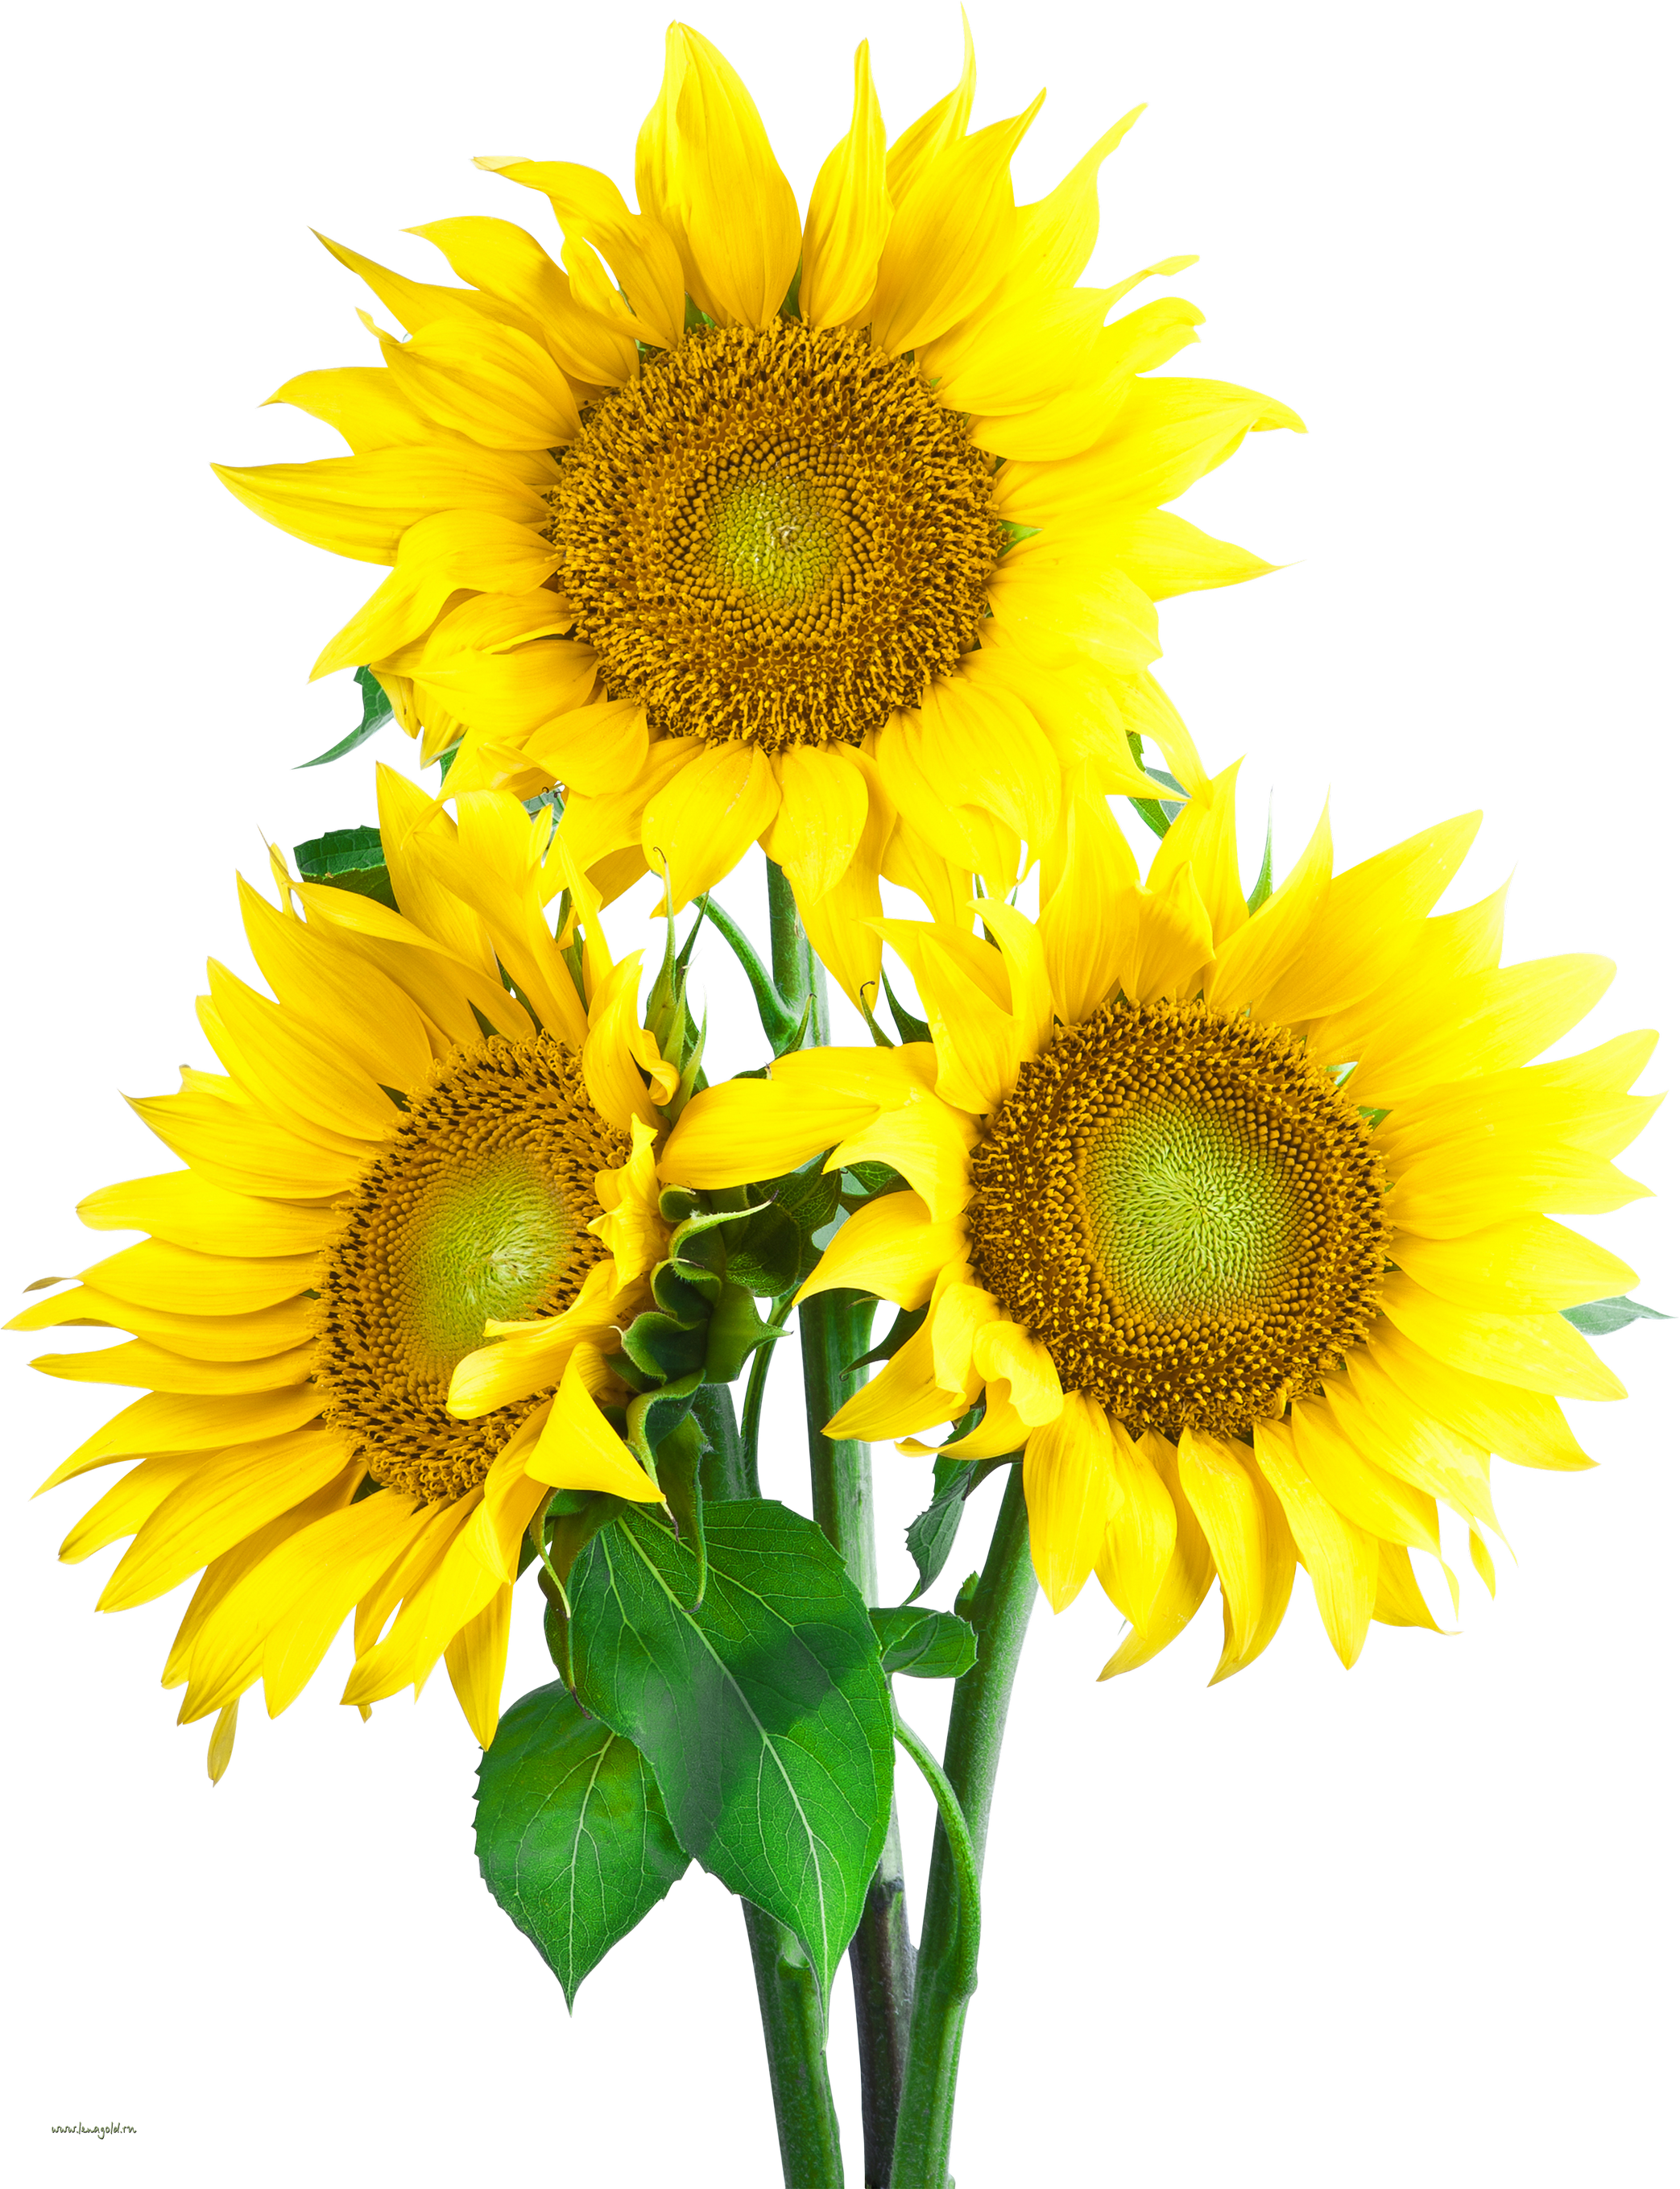 Sunflower PNG Image.